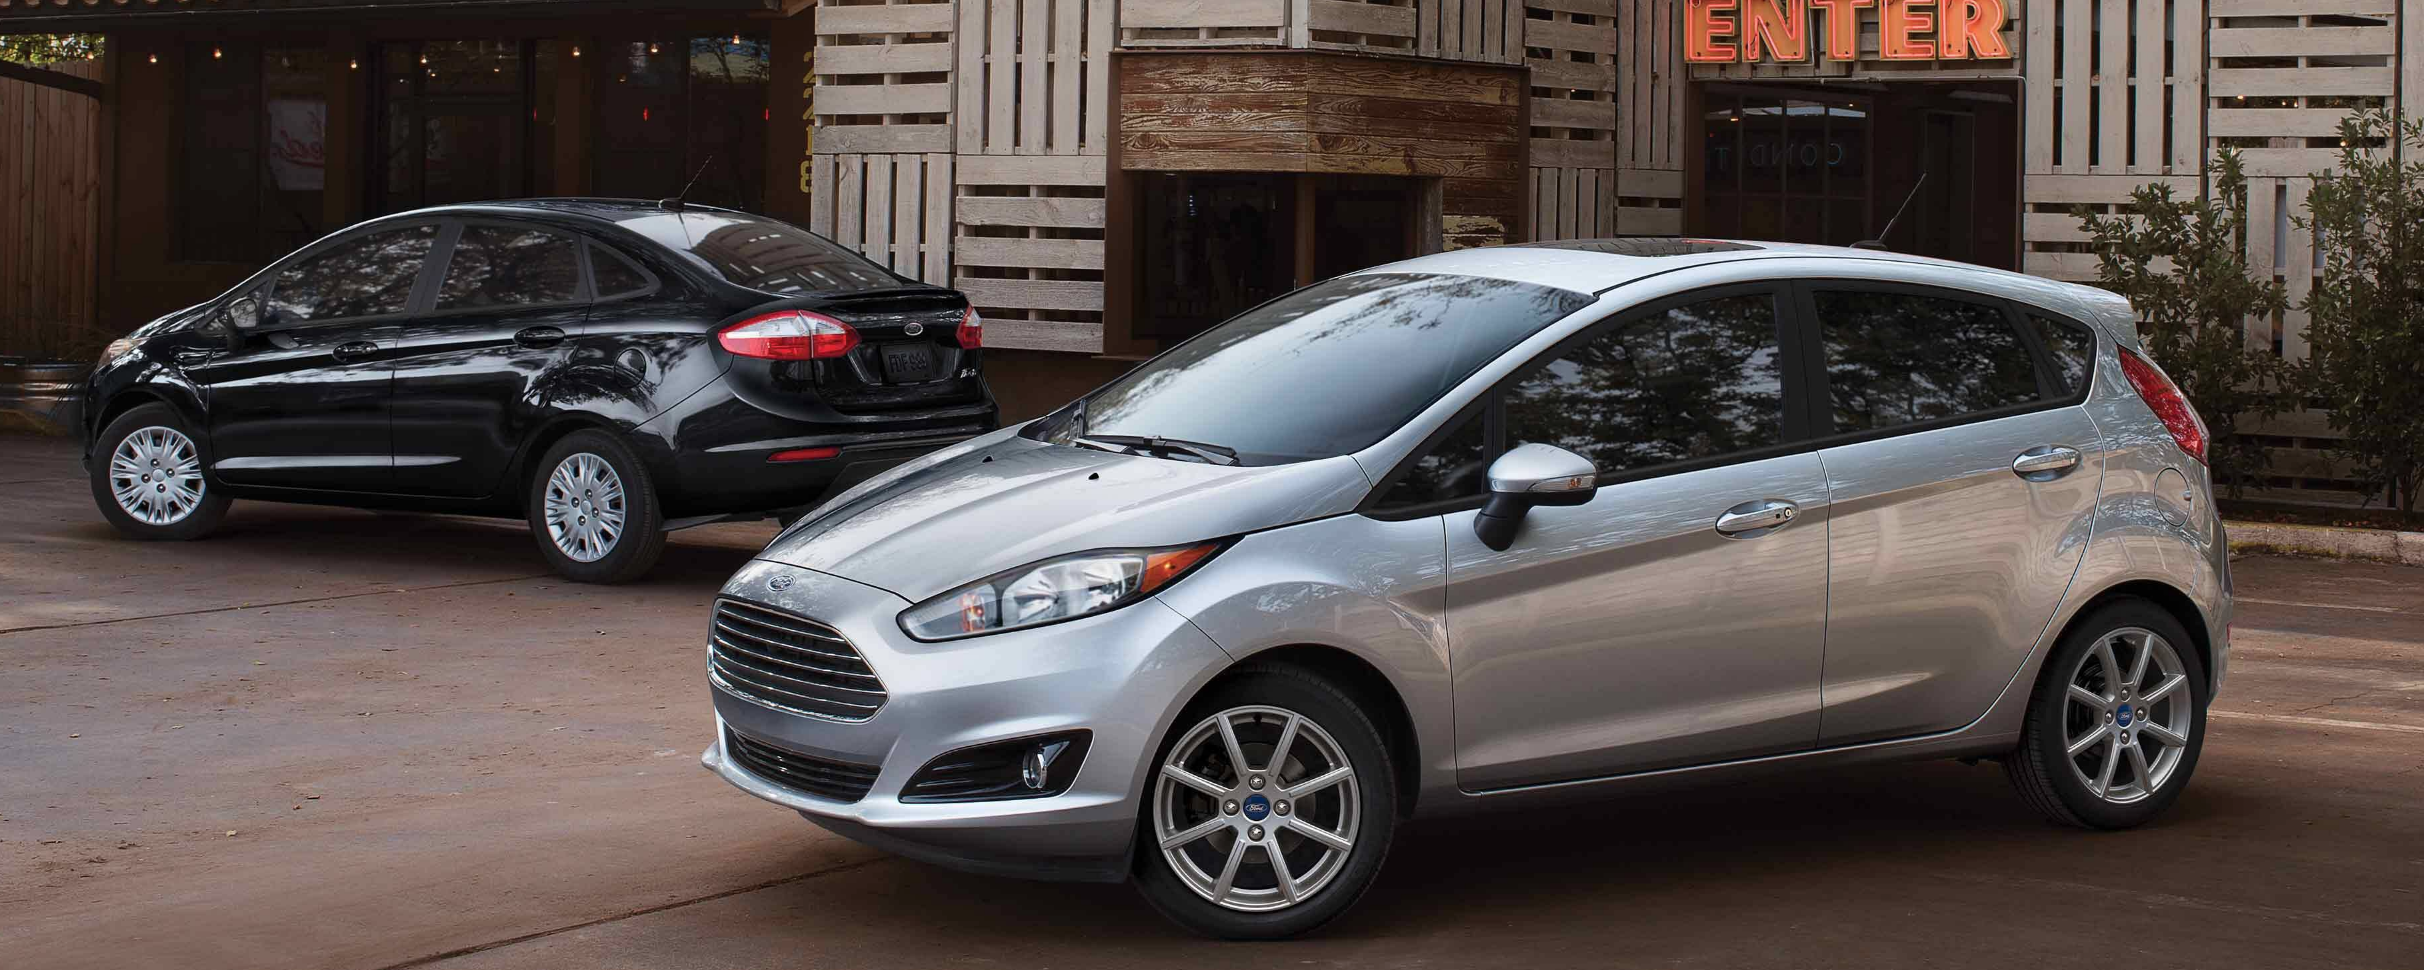 Ford Fiesta in Hialeah